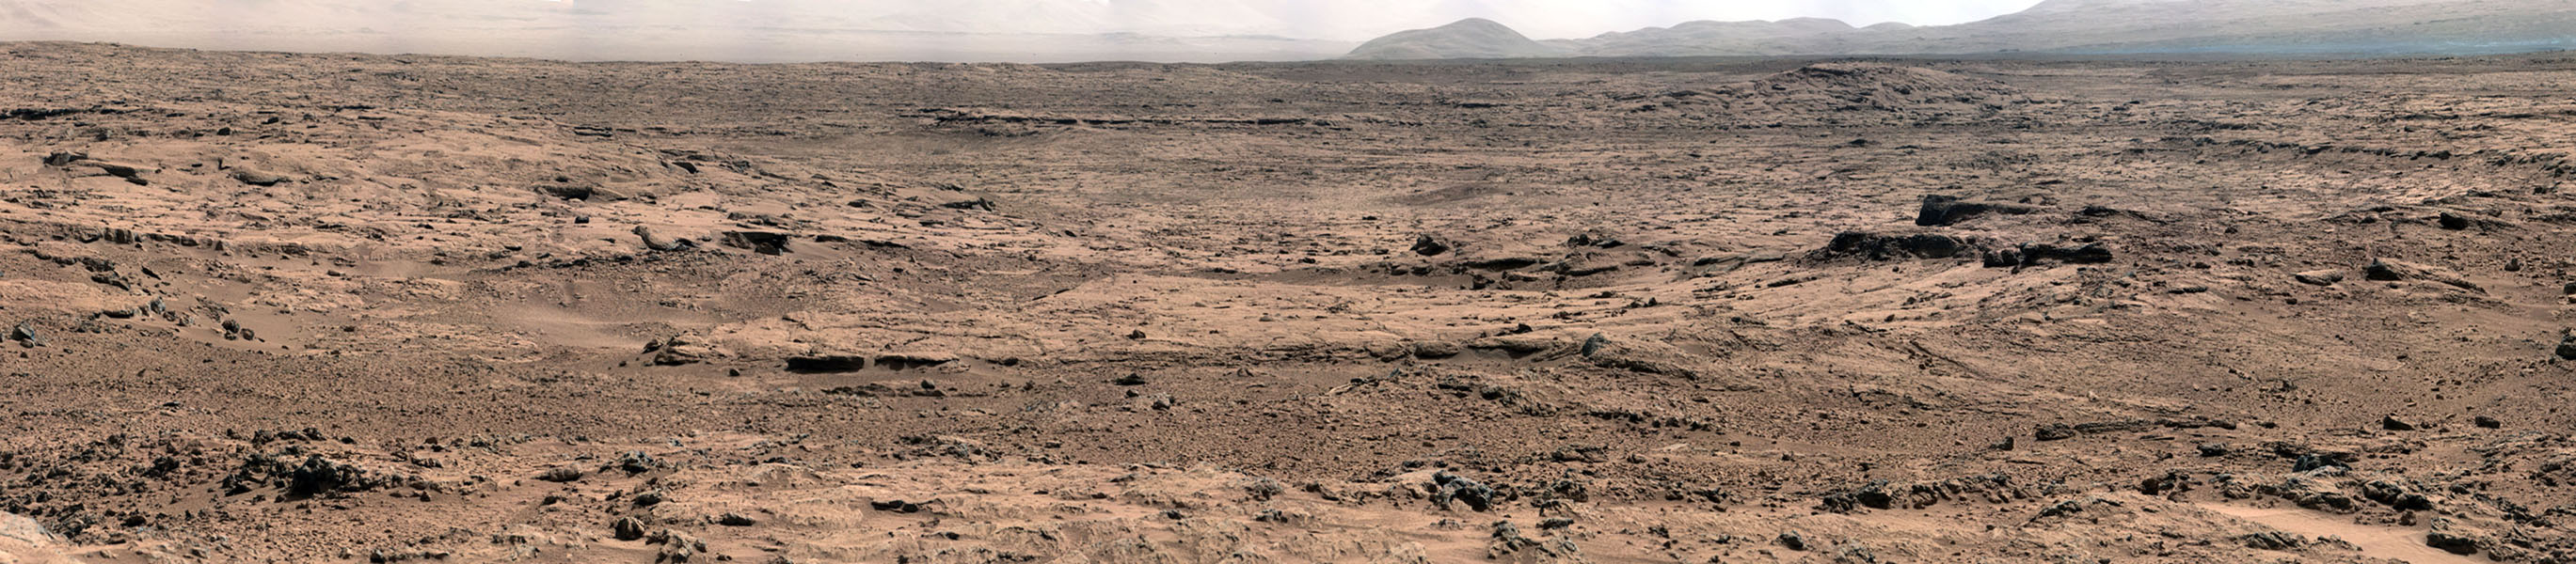 The image, which has been white-balanced to show what the rocks and soils in it would look like if they were on Earth, is a mosaic of images taken at a site called 'Rocknest' while NASA's Mars rover Curiosity was working.